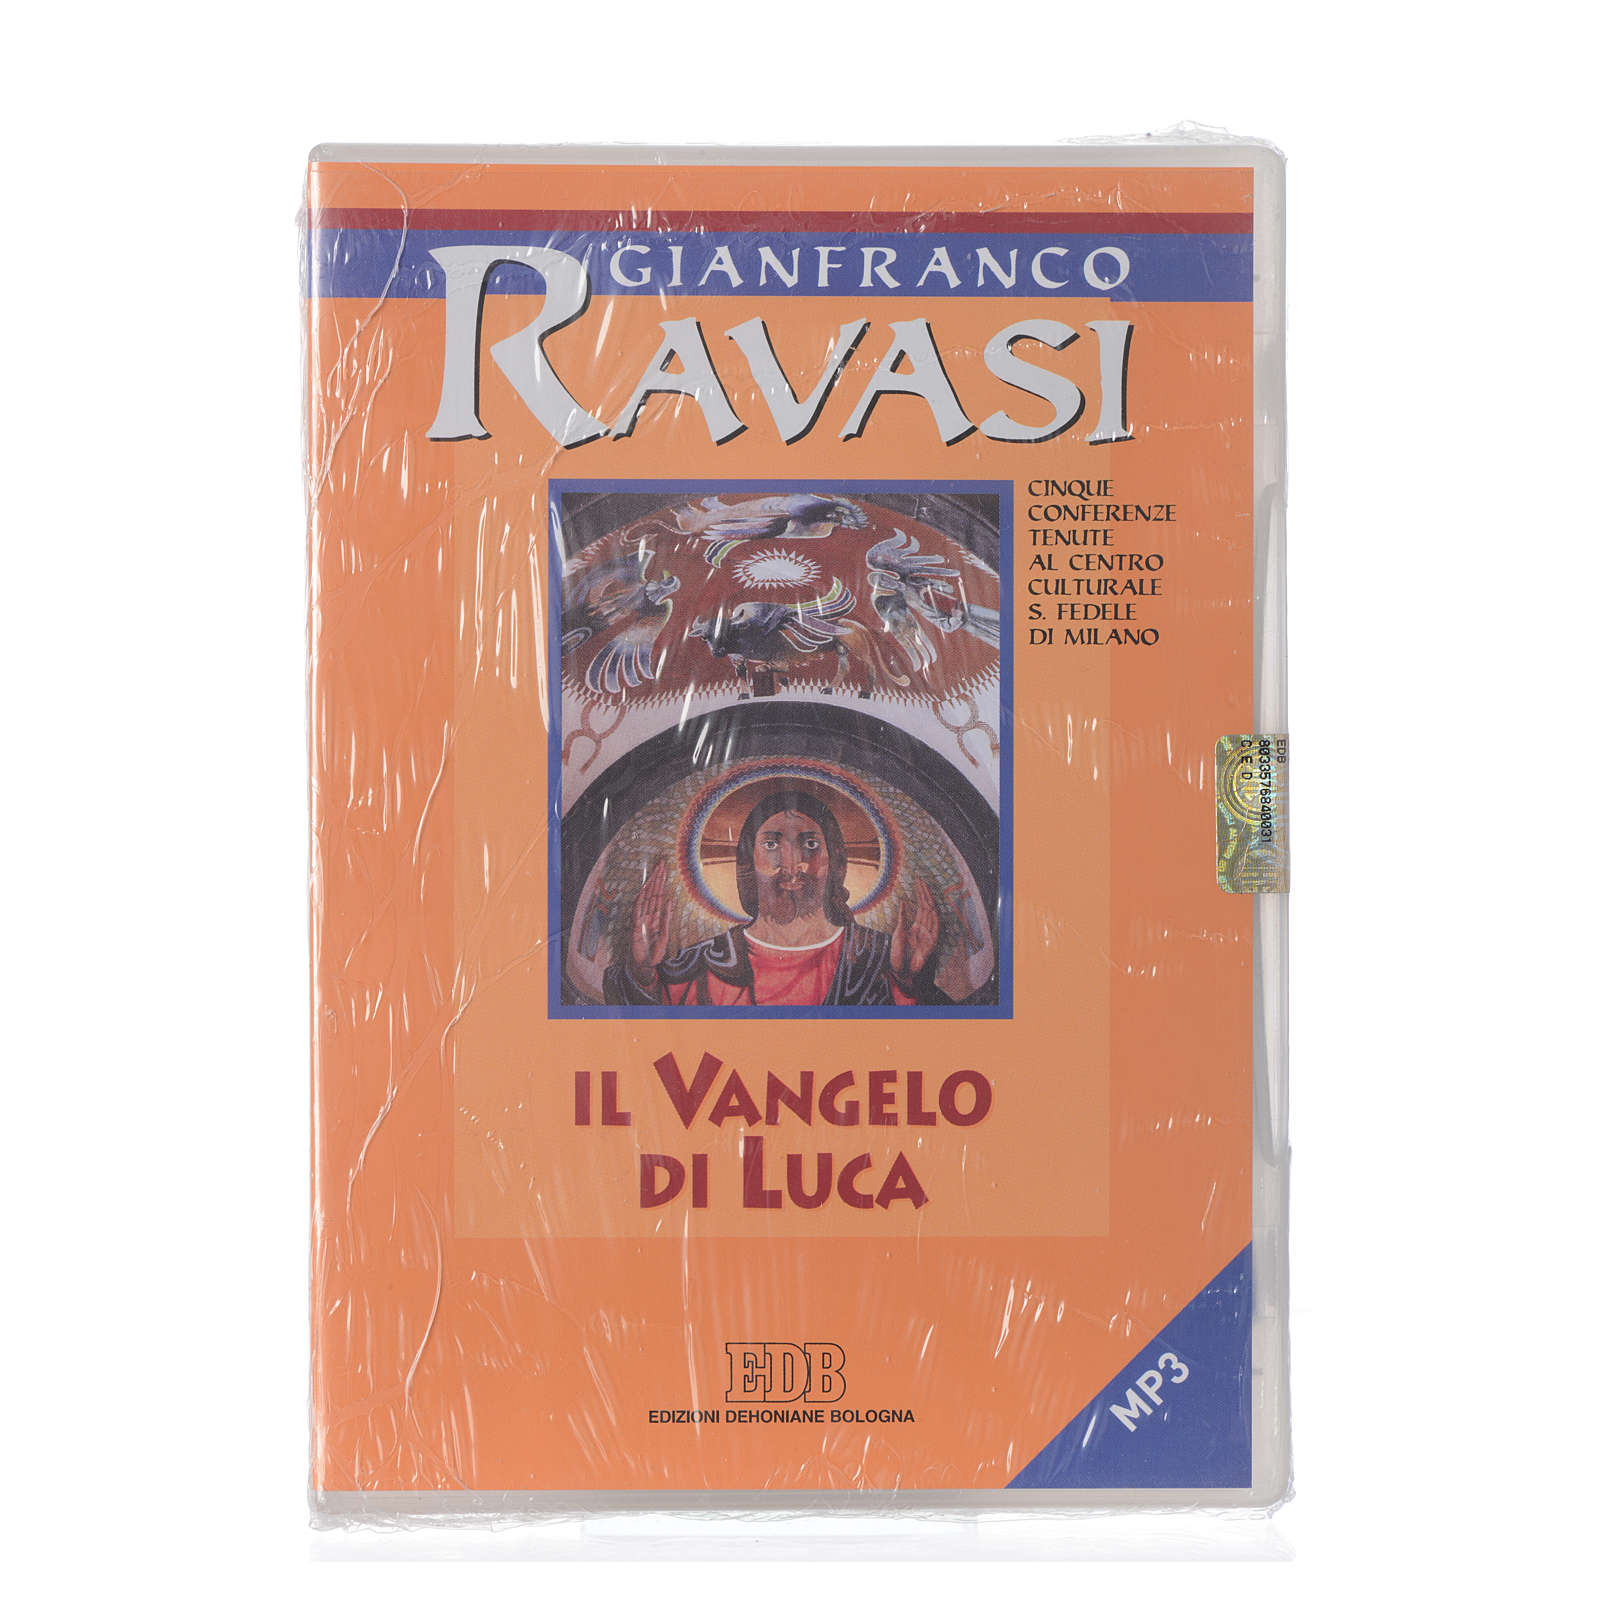 Vangelo di Luca  - Cd Conferenze 4